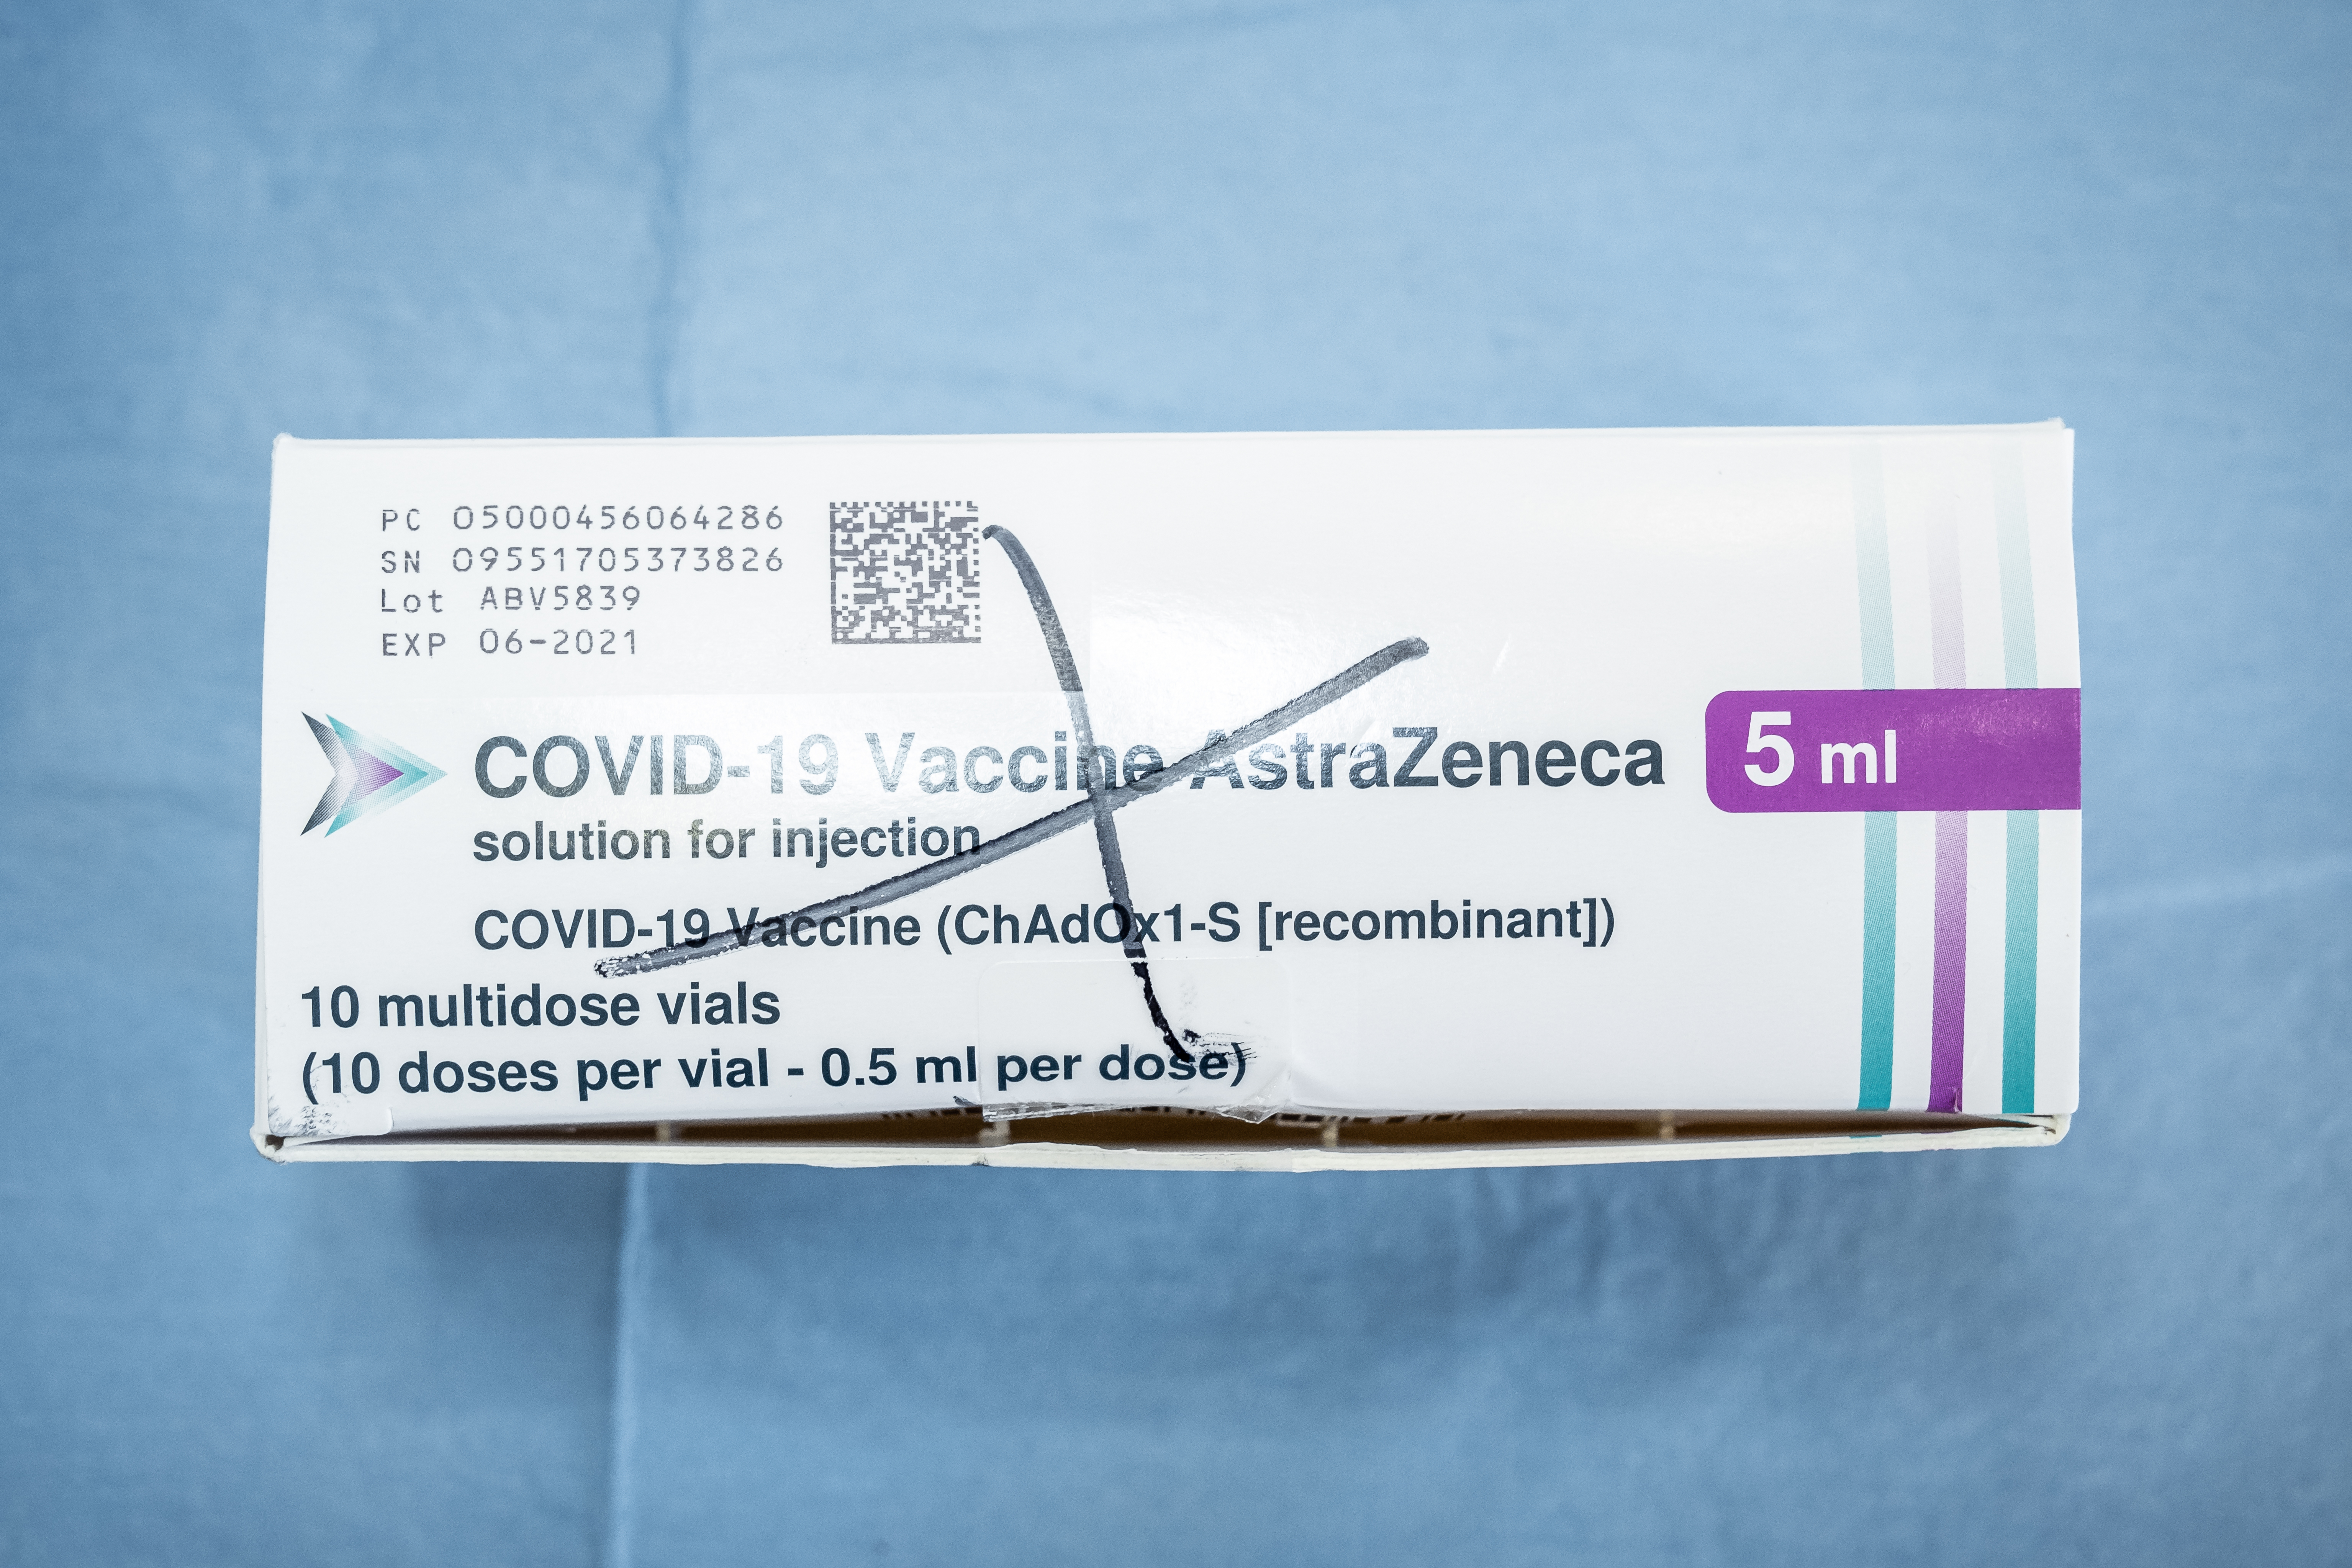 Covid-19 Vaccination in Italy's Naples